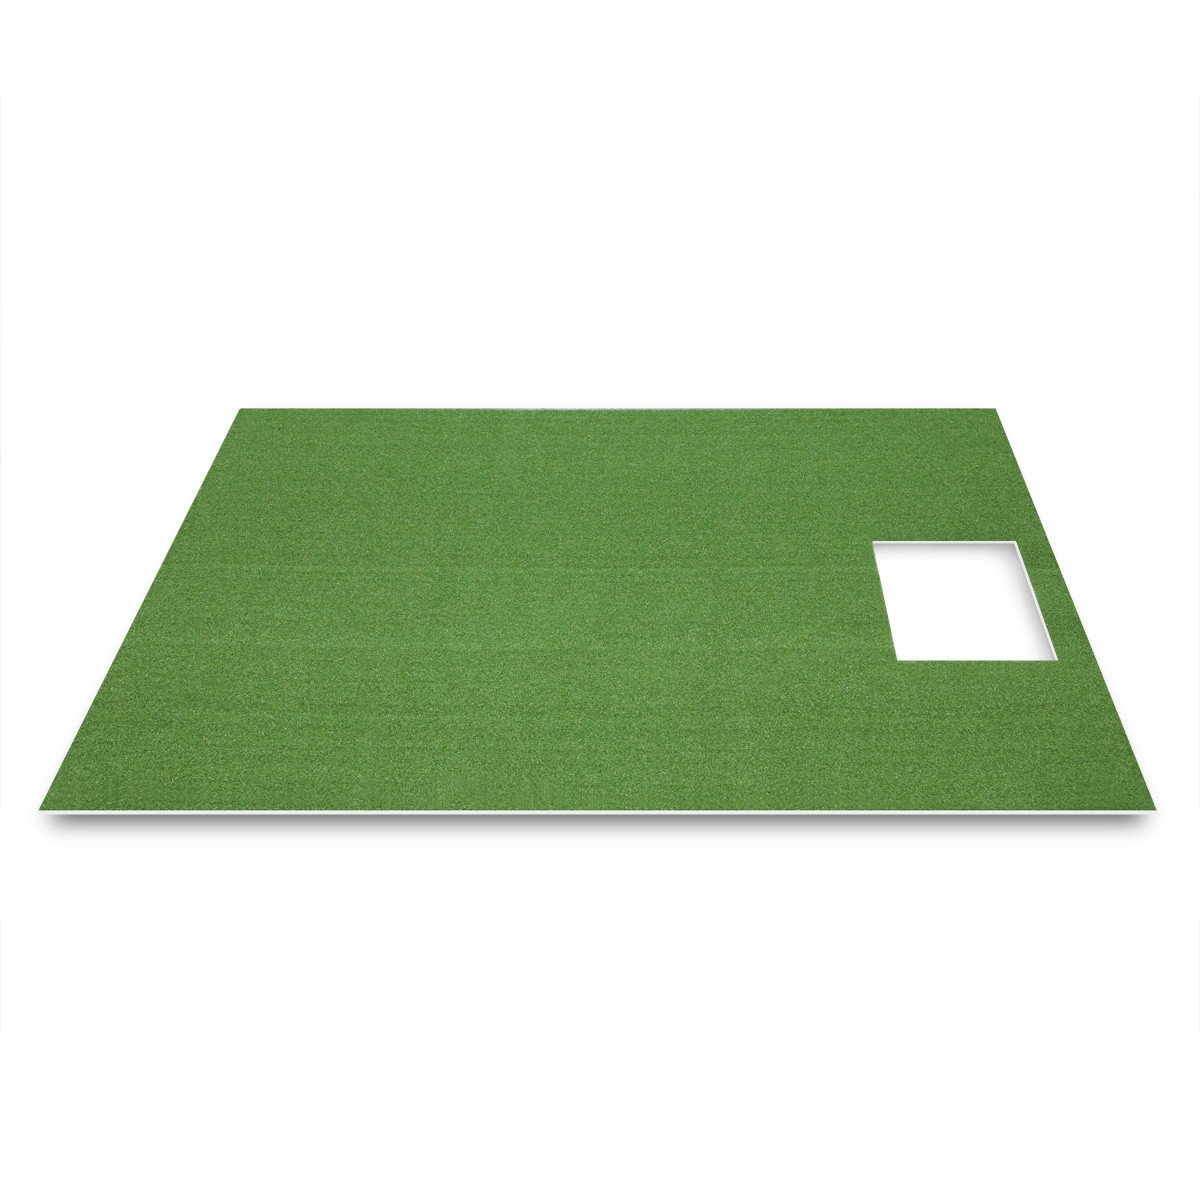 golf at roll mat mats com size alibaba coil showroom diy and suppliers skid manufacturers resistant durapro pvc